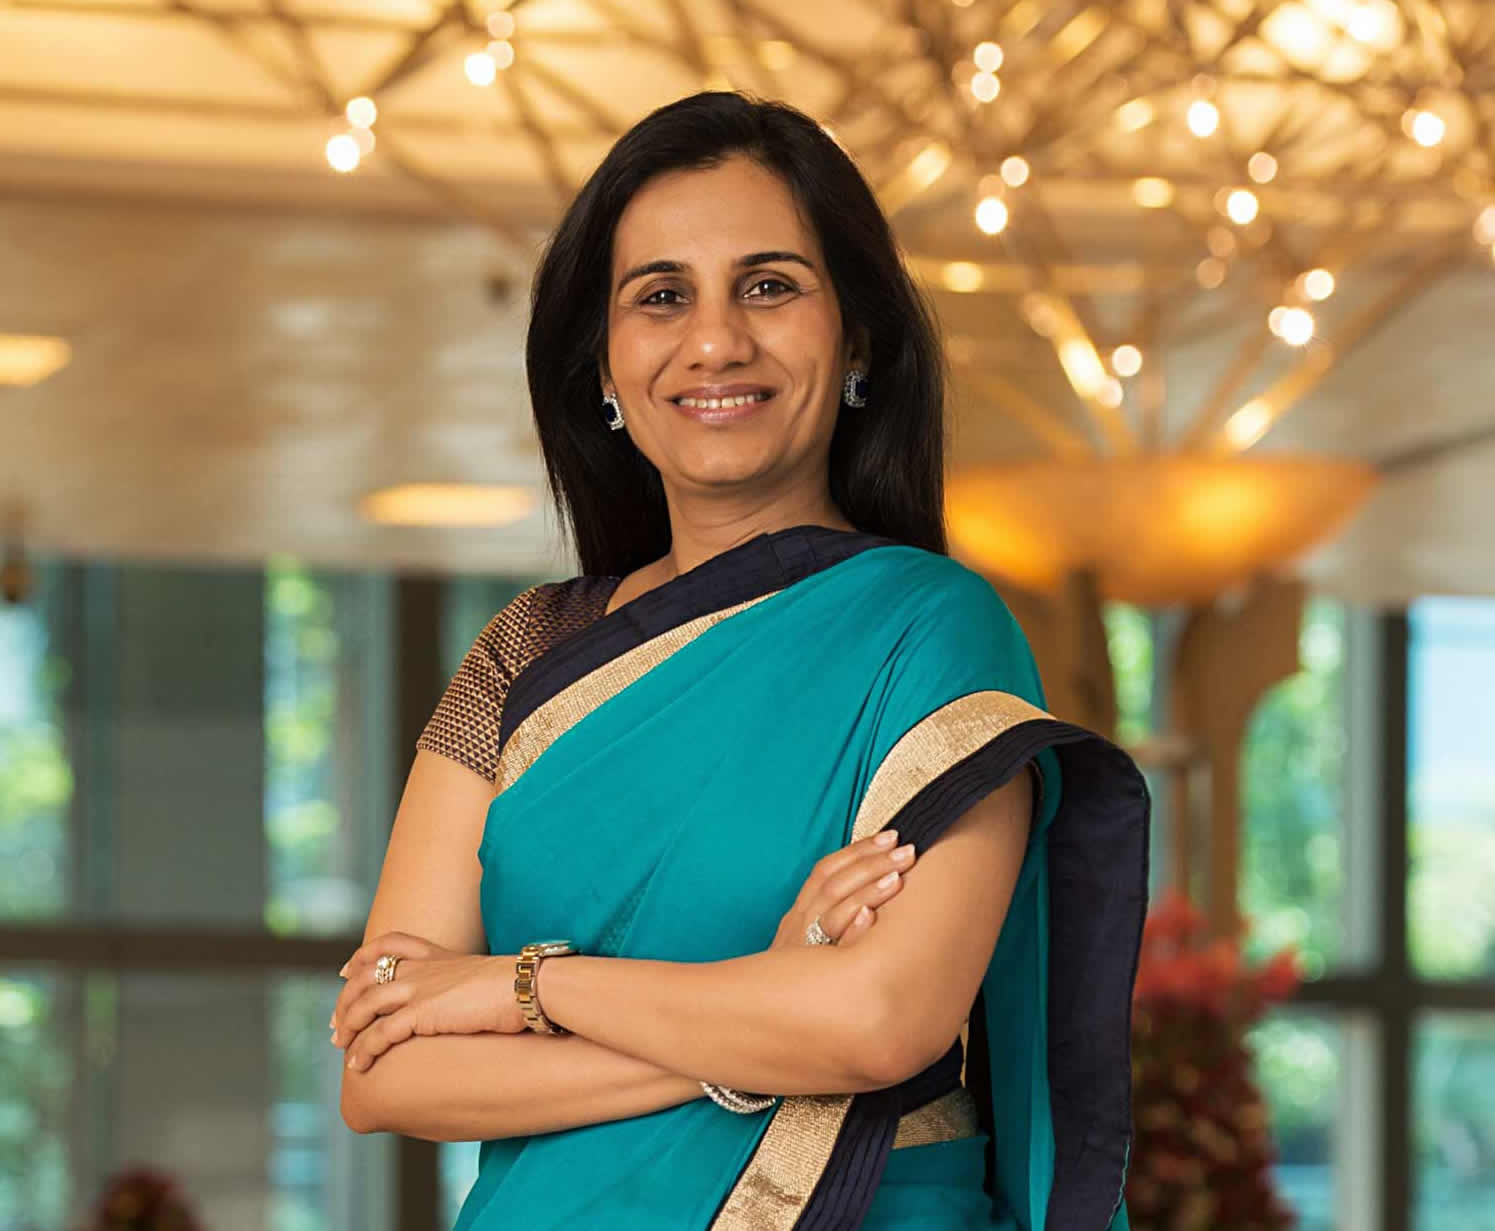 Chanda Kochhar in an exclusive essay on gender diversity in corporate India for Verve Magazine